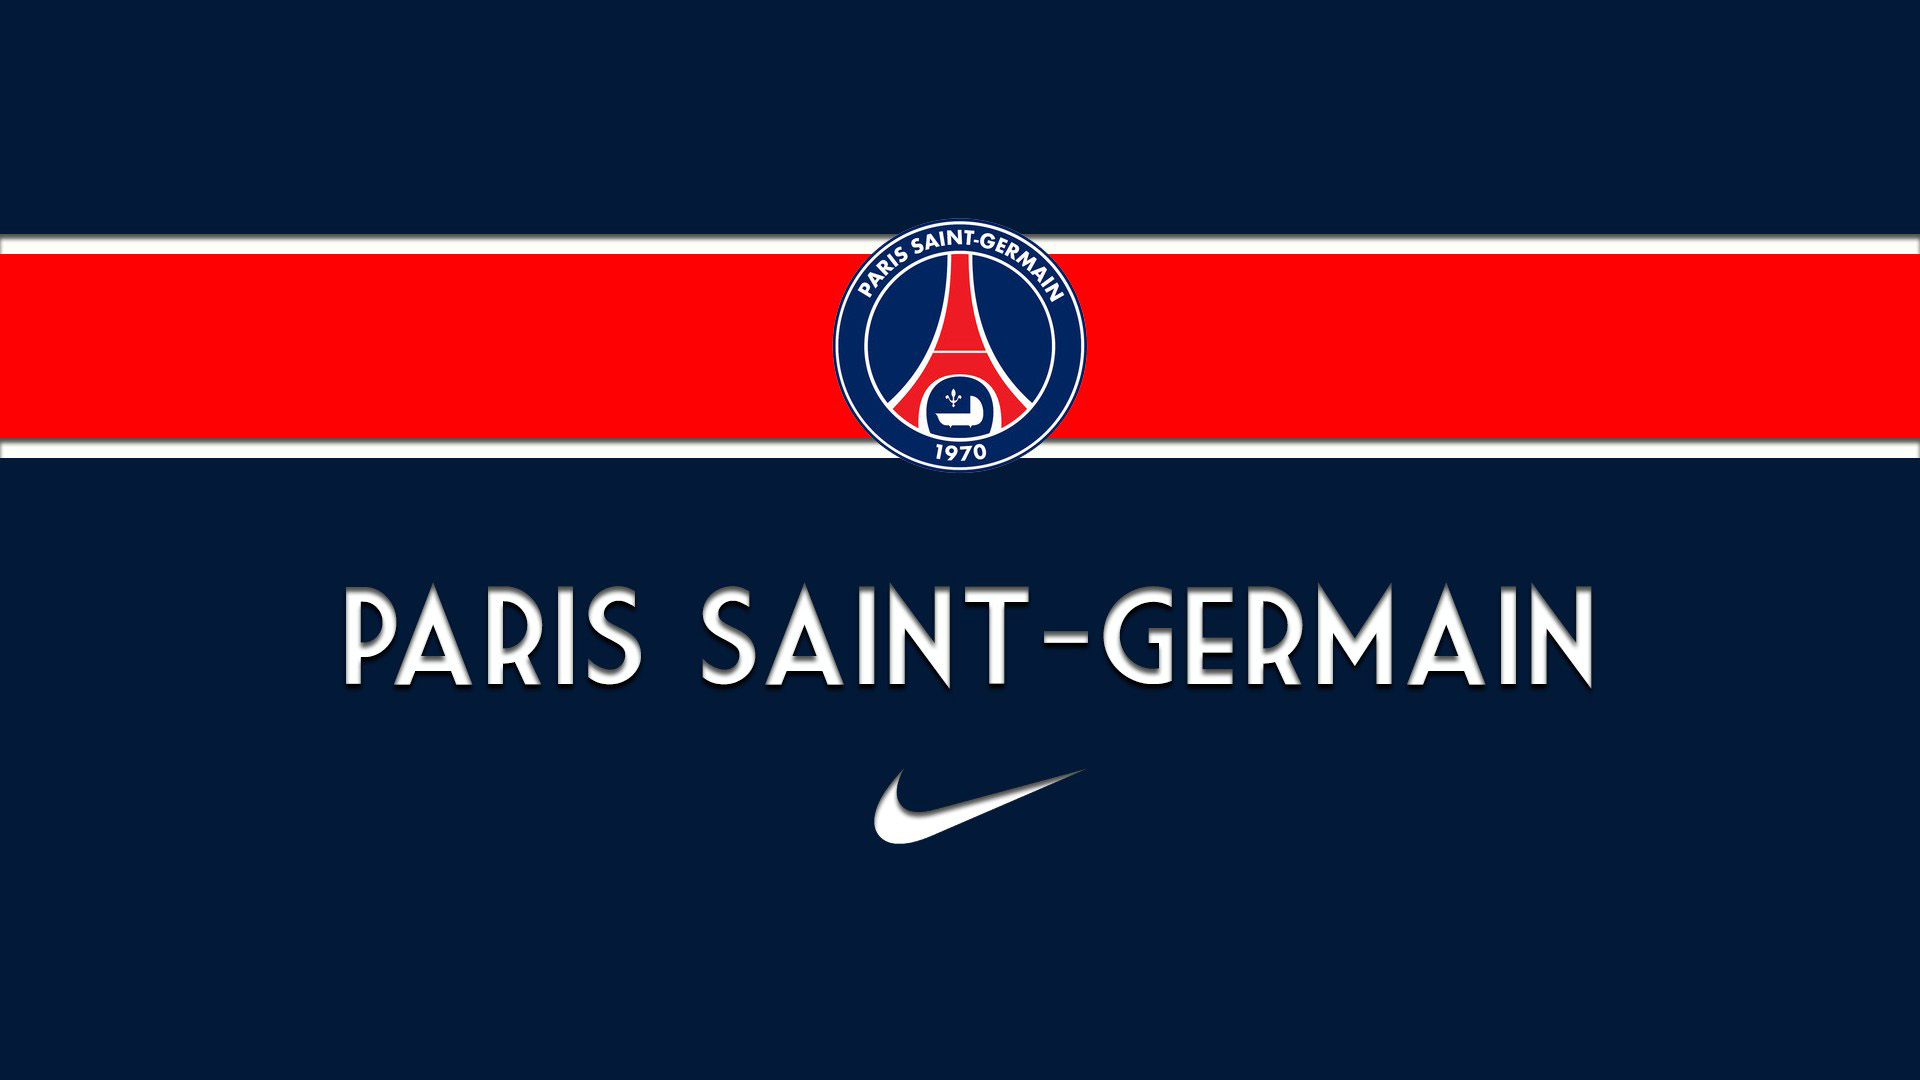 paris saint germain logo - photo #14